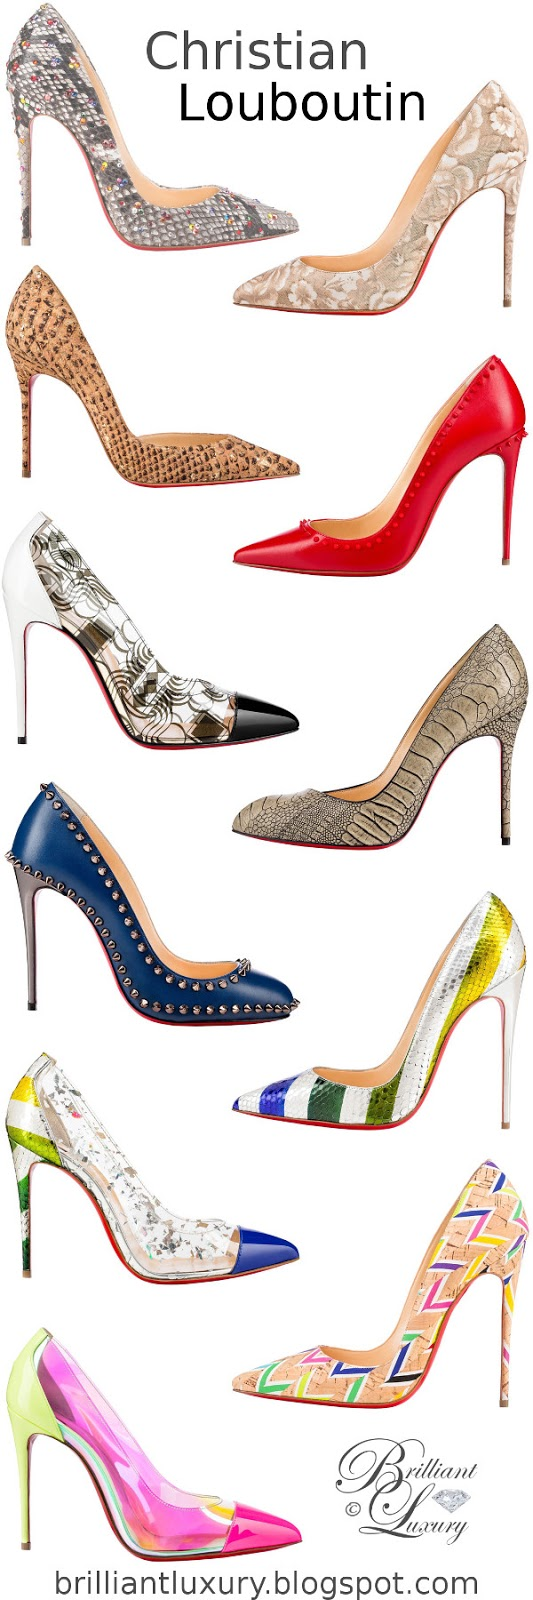 Brilliant Luxury ♦ Christian Louboutin hot summer pumps 2016